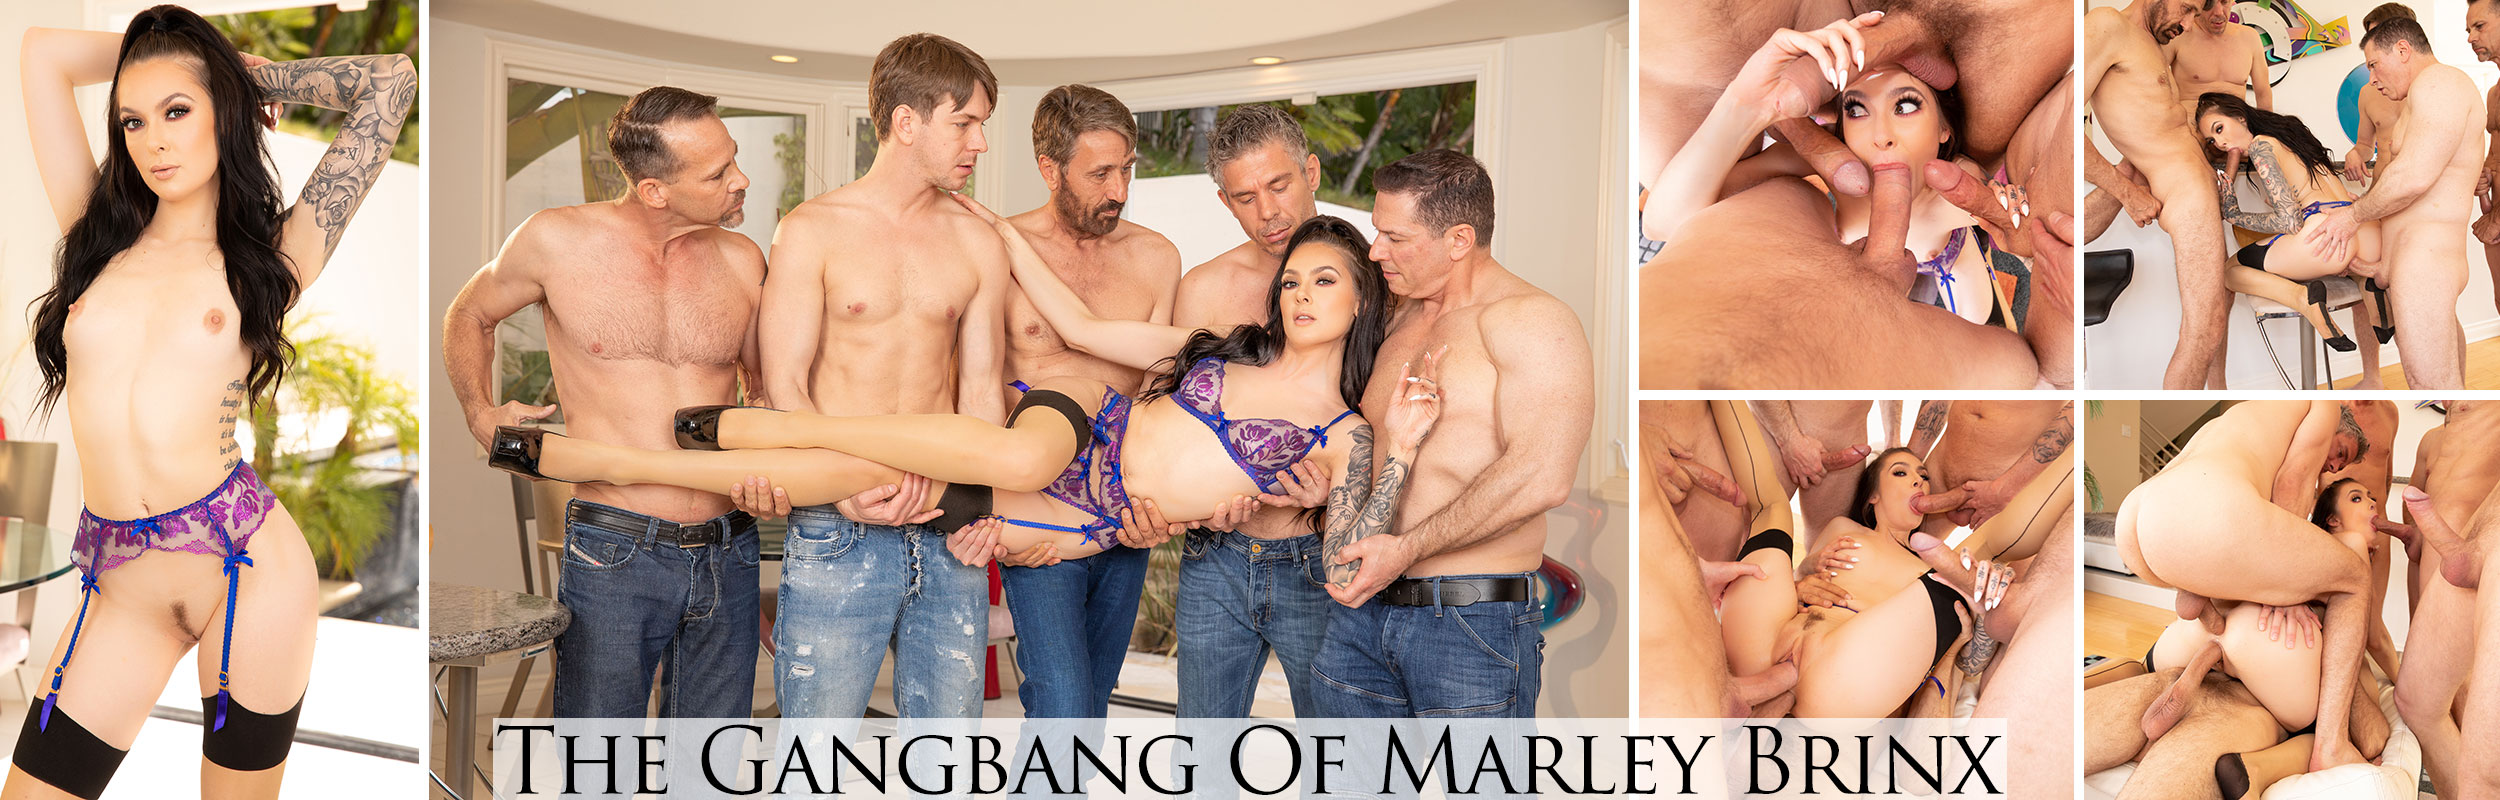 The Gangbang Of Marley Brinx